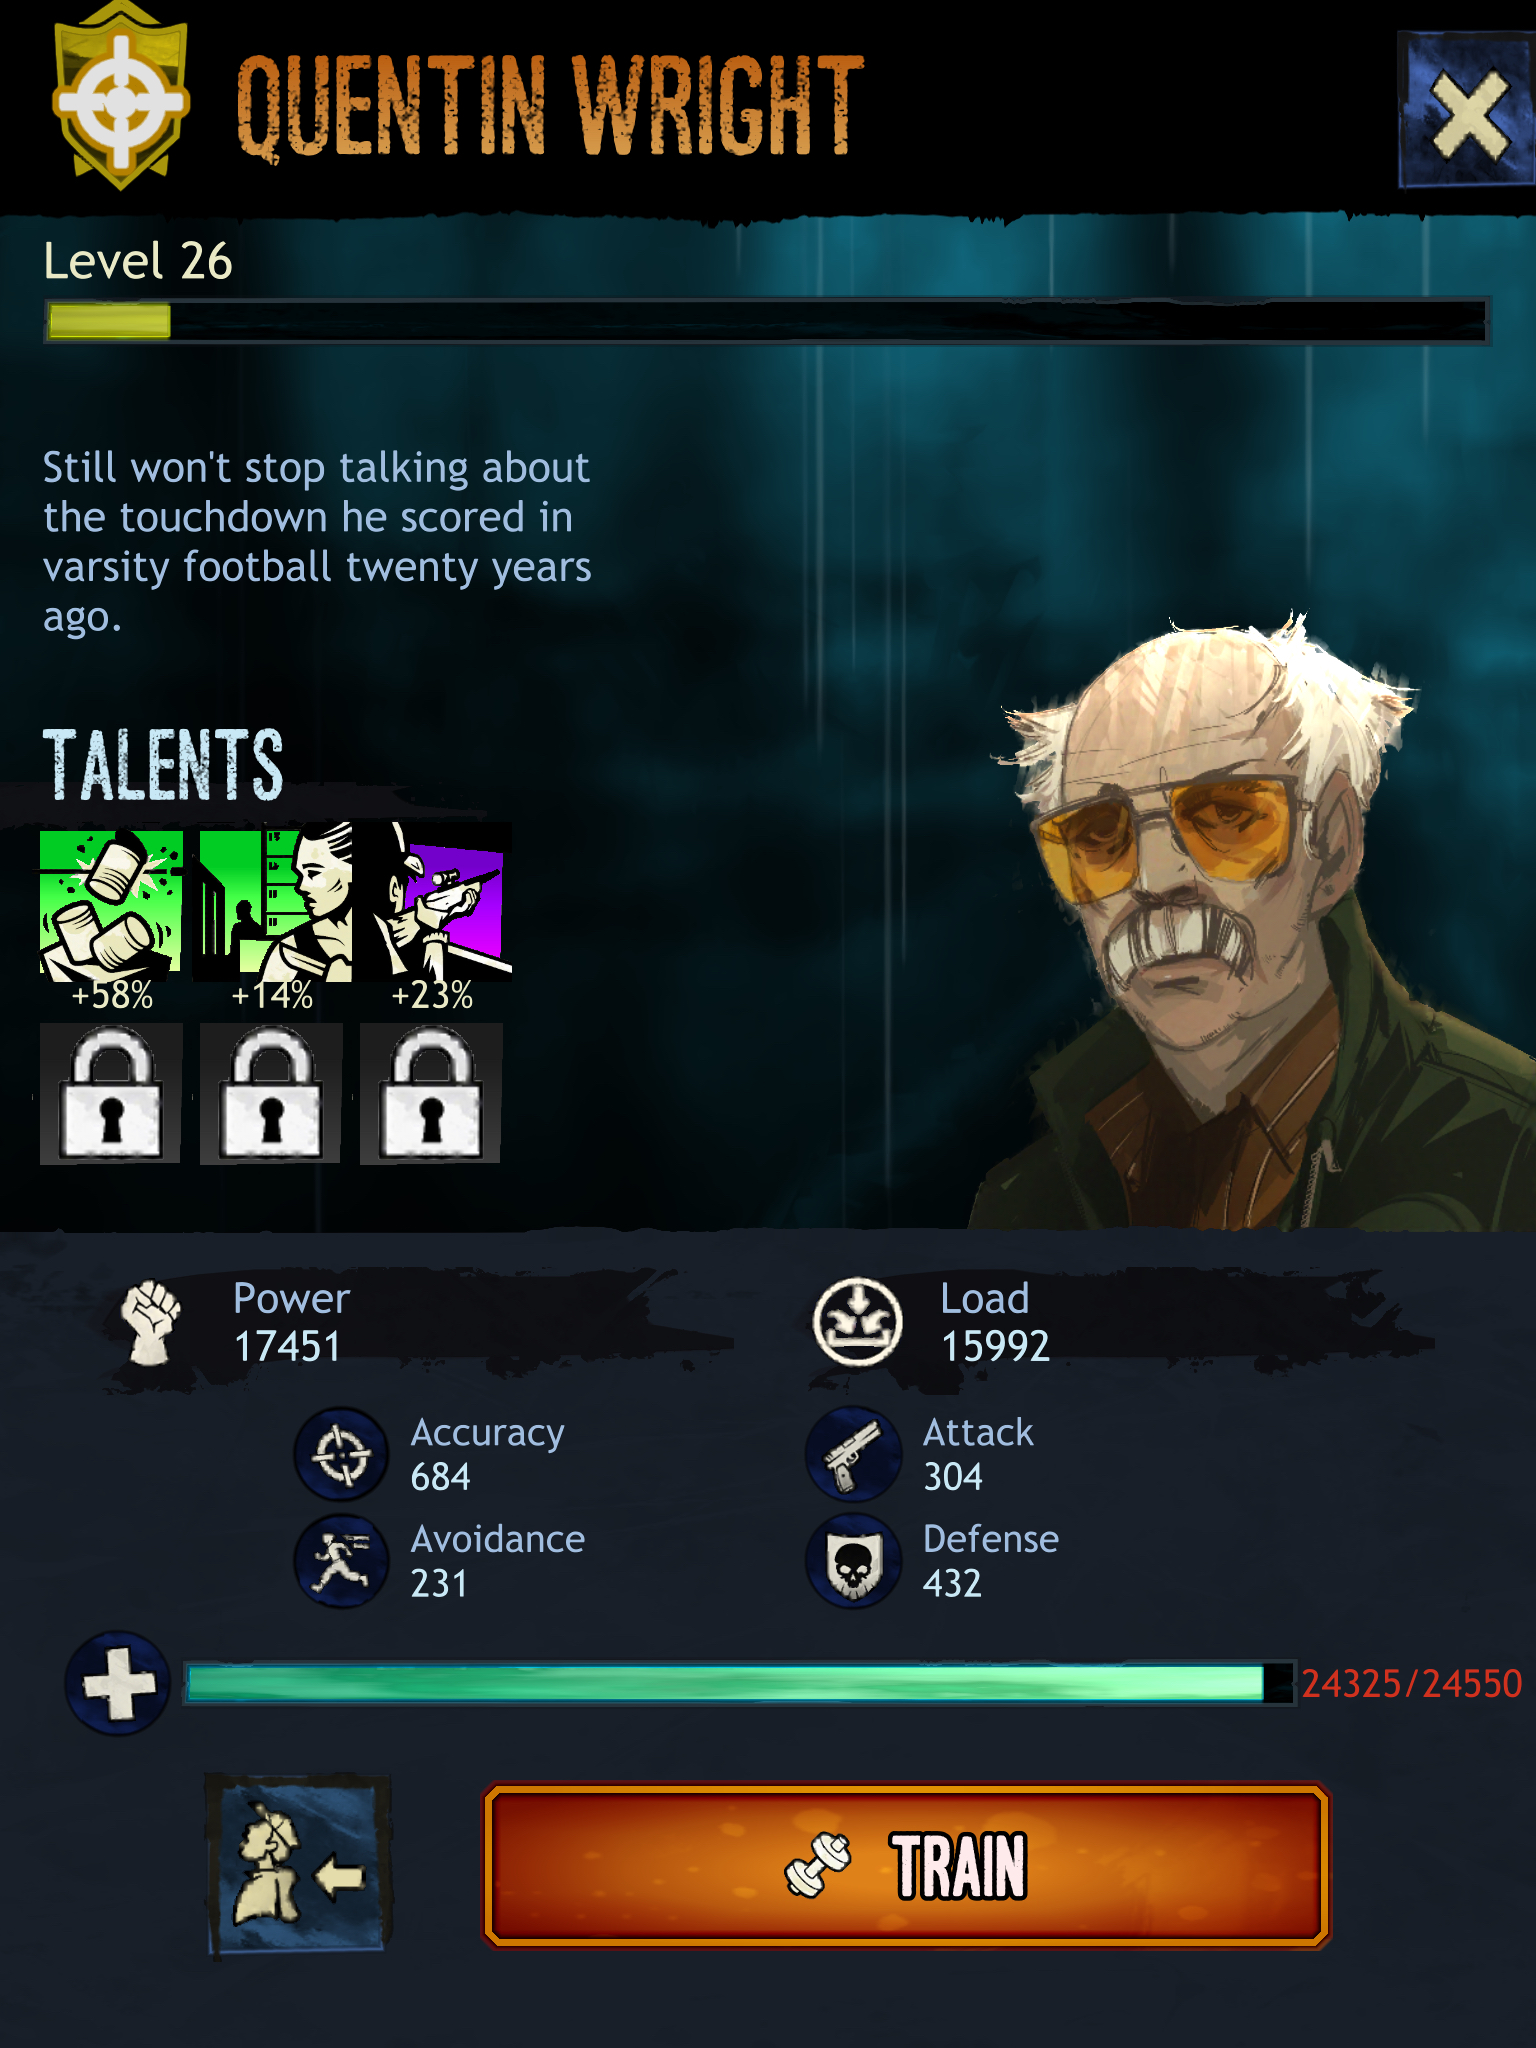 This survivor has one Epic and two Rare talents.